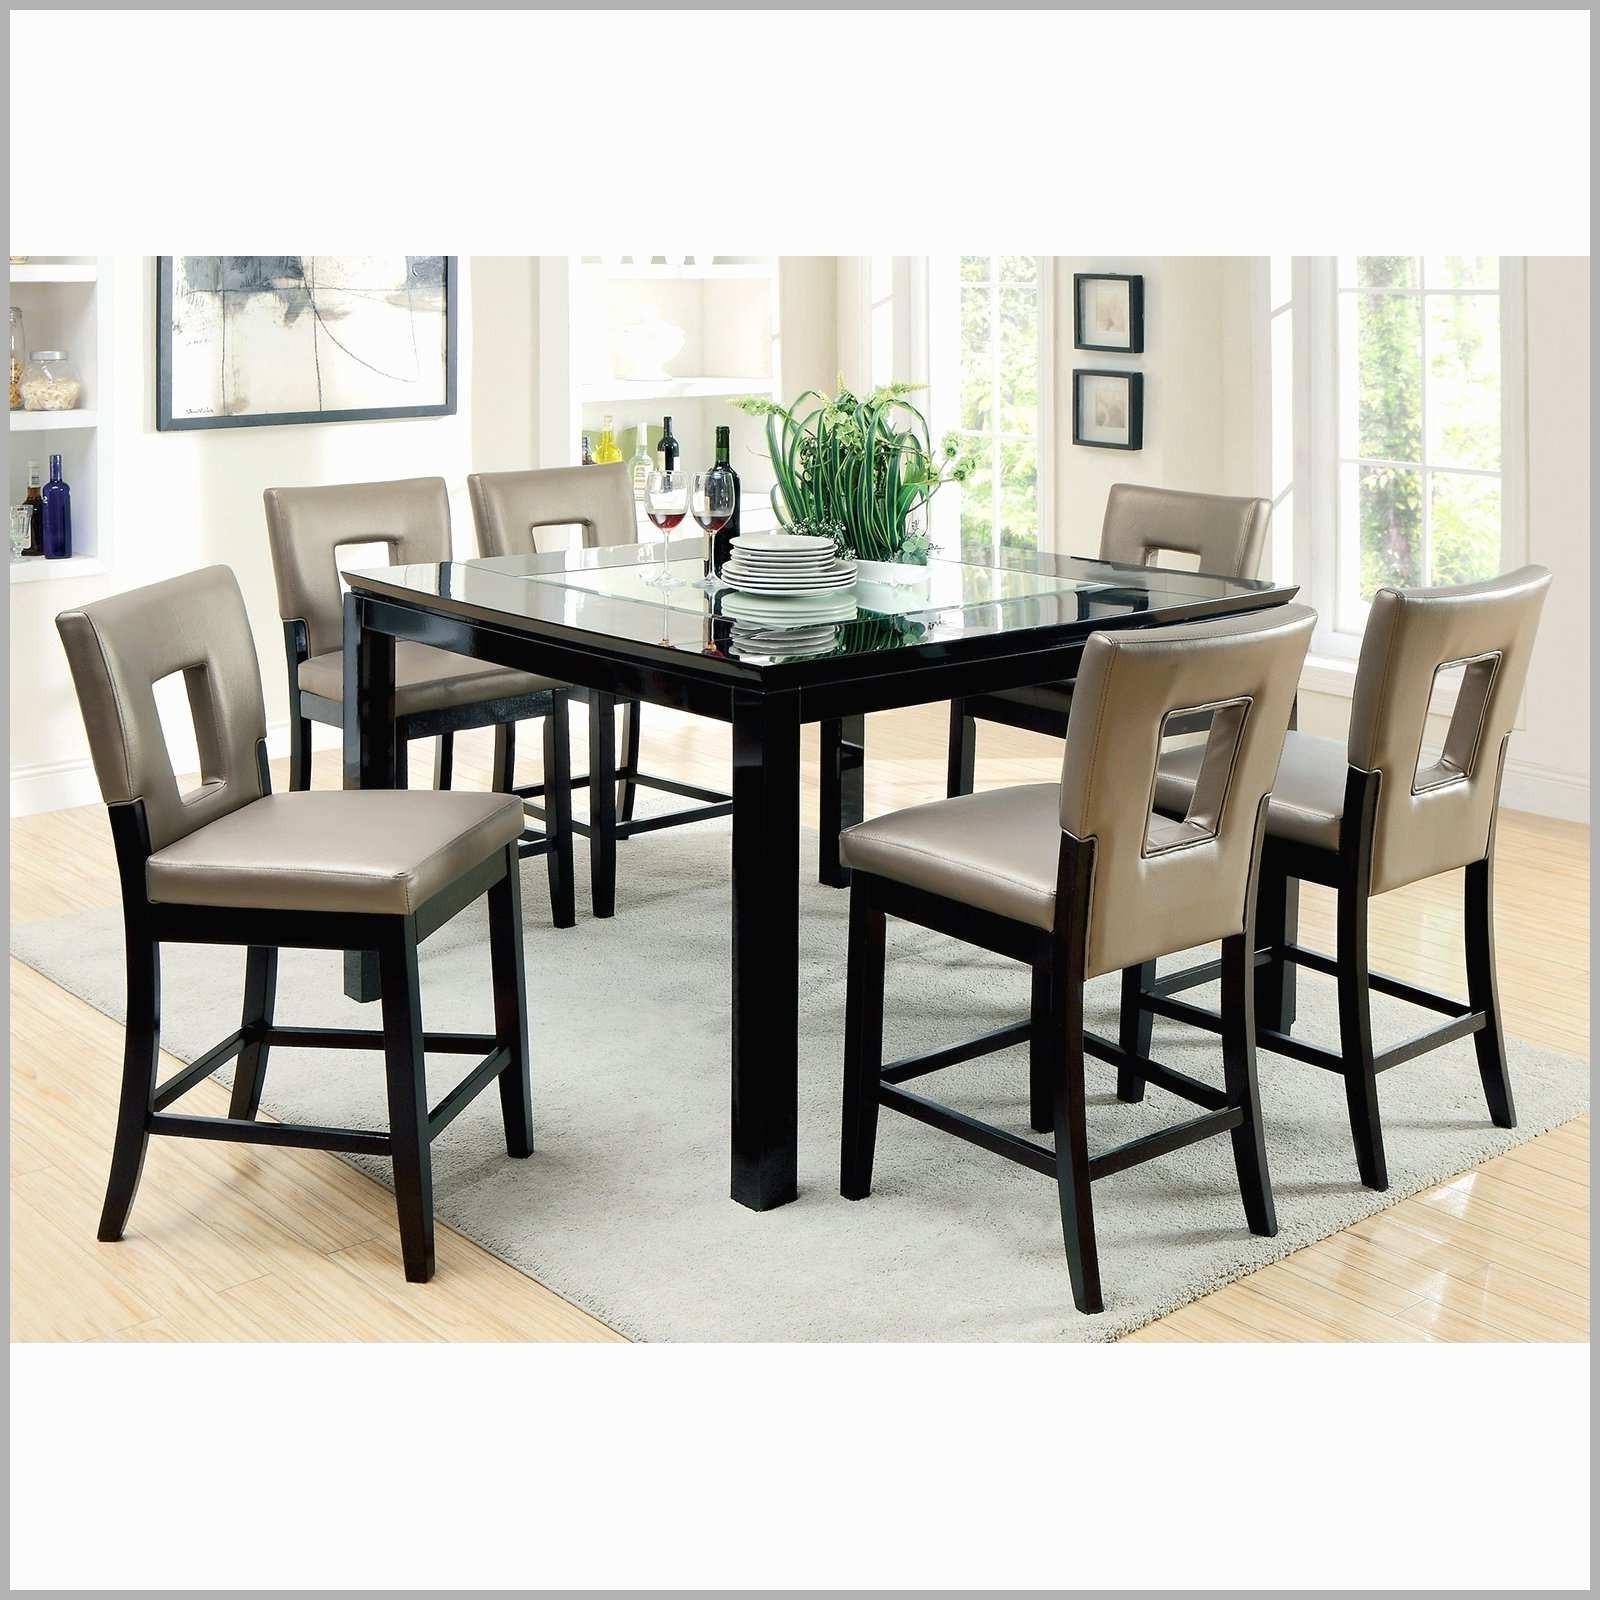 8 Seater Dining Table Sets With Regard To Well Liked White High Gloss Extending Dining Table Luxury 8 Seater Dining Table (View 9 of 25)